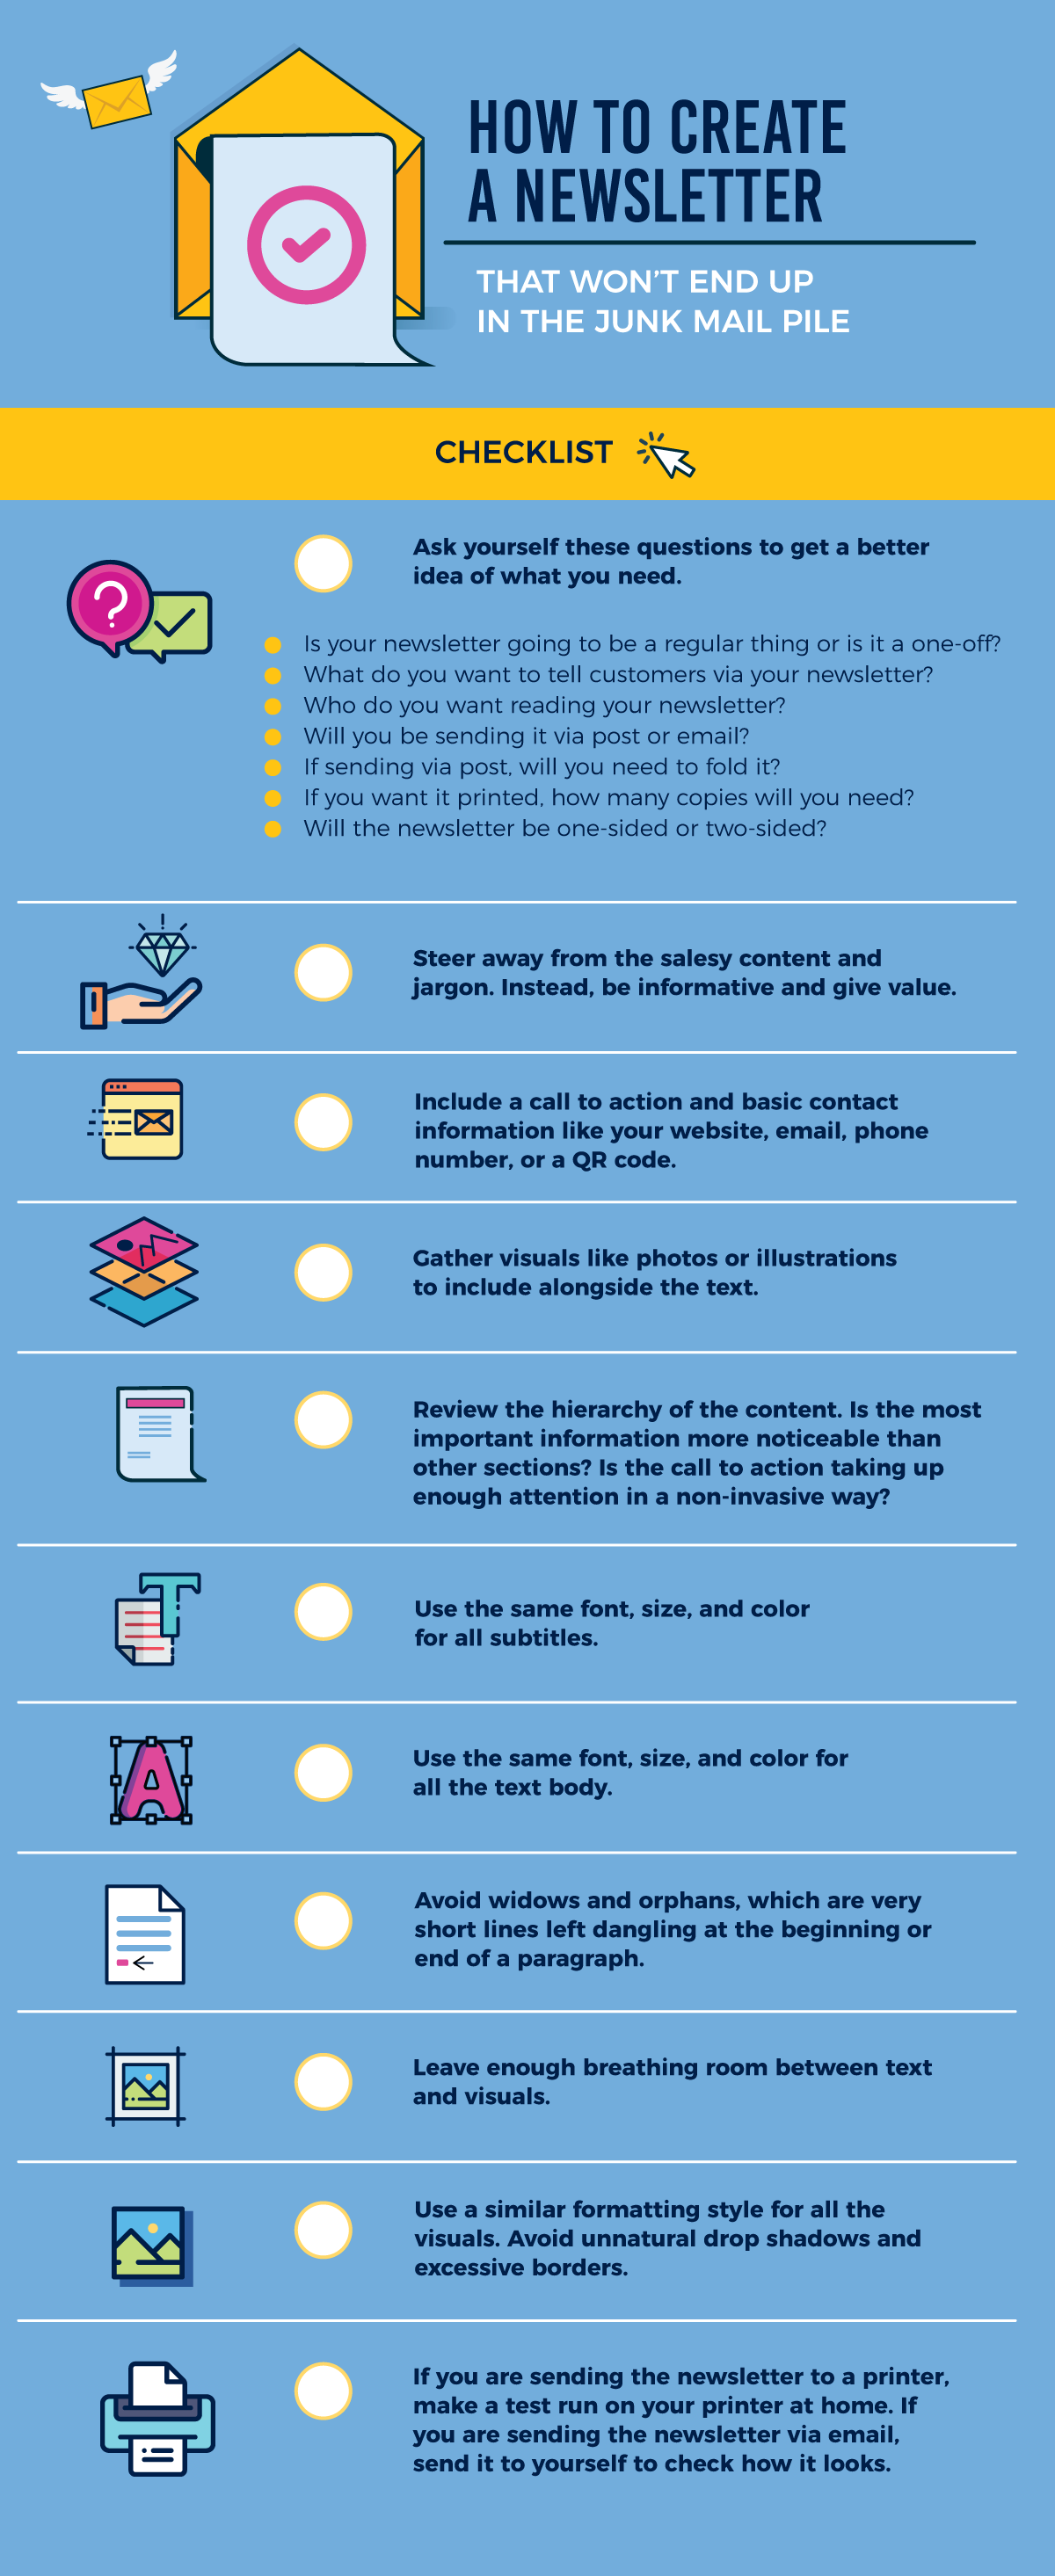 how-to-create-a-newsletter-infographic checklist